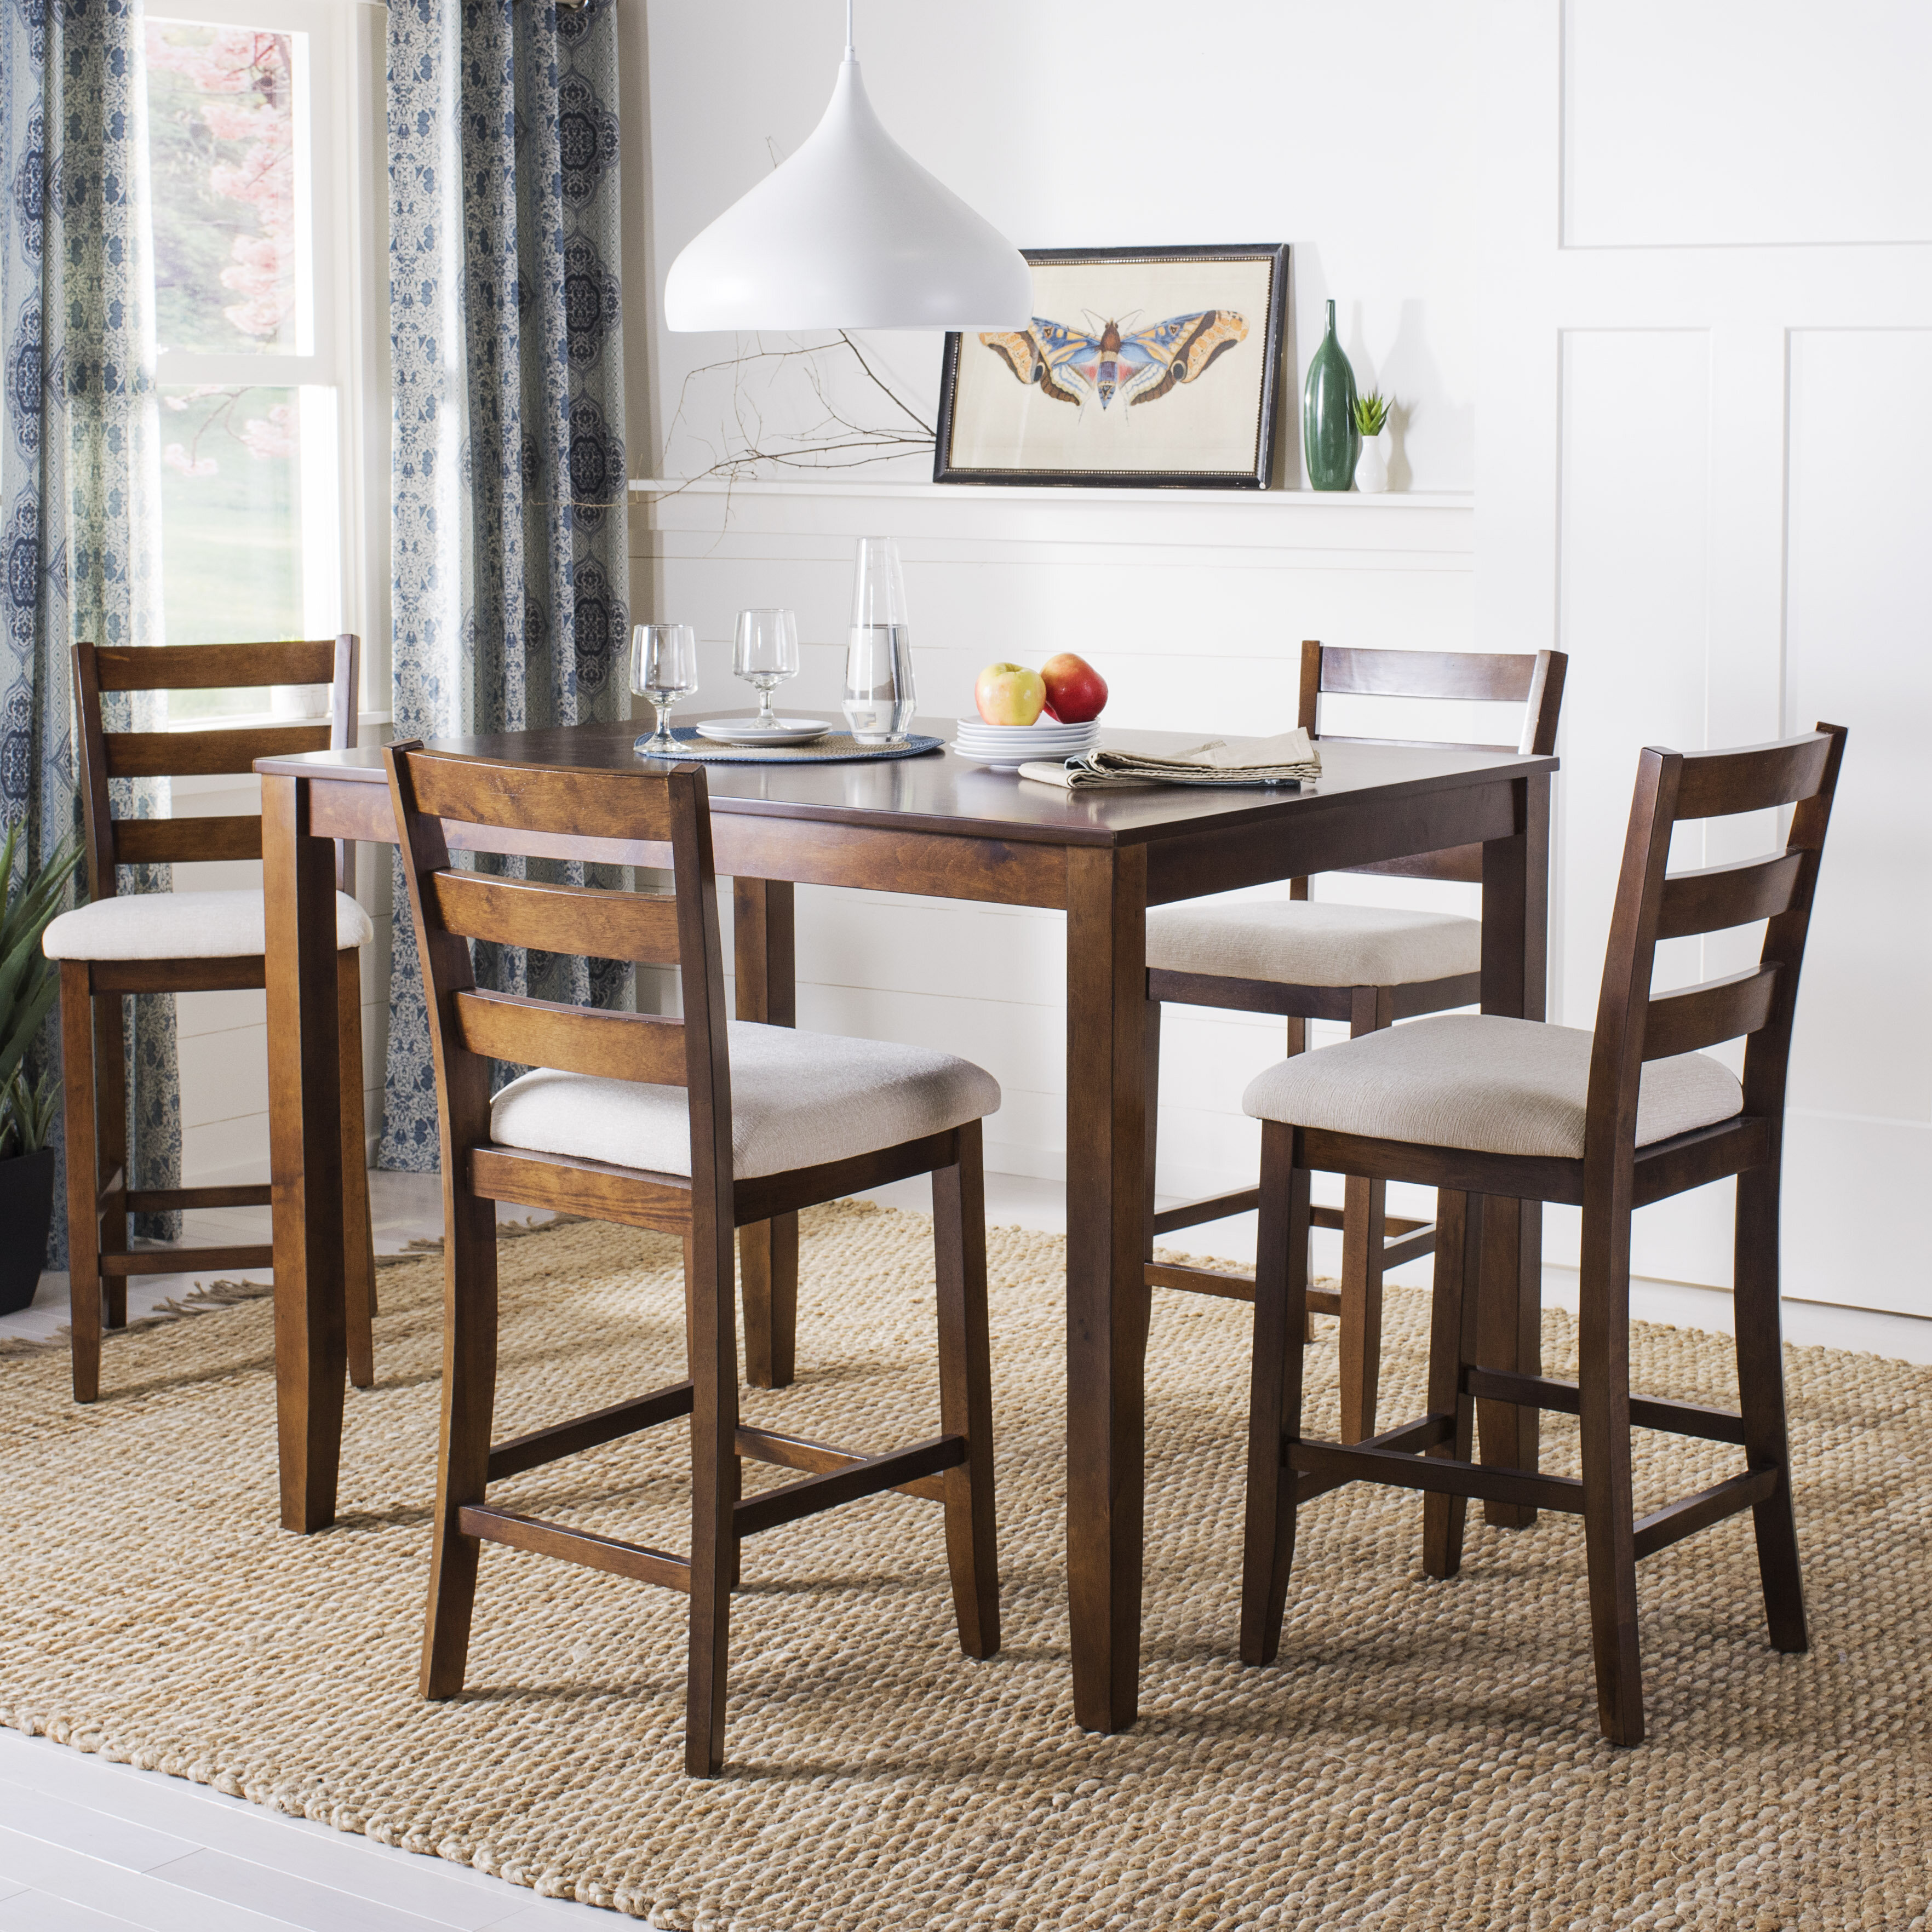 Alcott hill hervey bay 5 piece pub table set wayfair